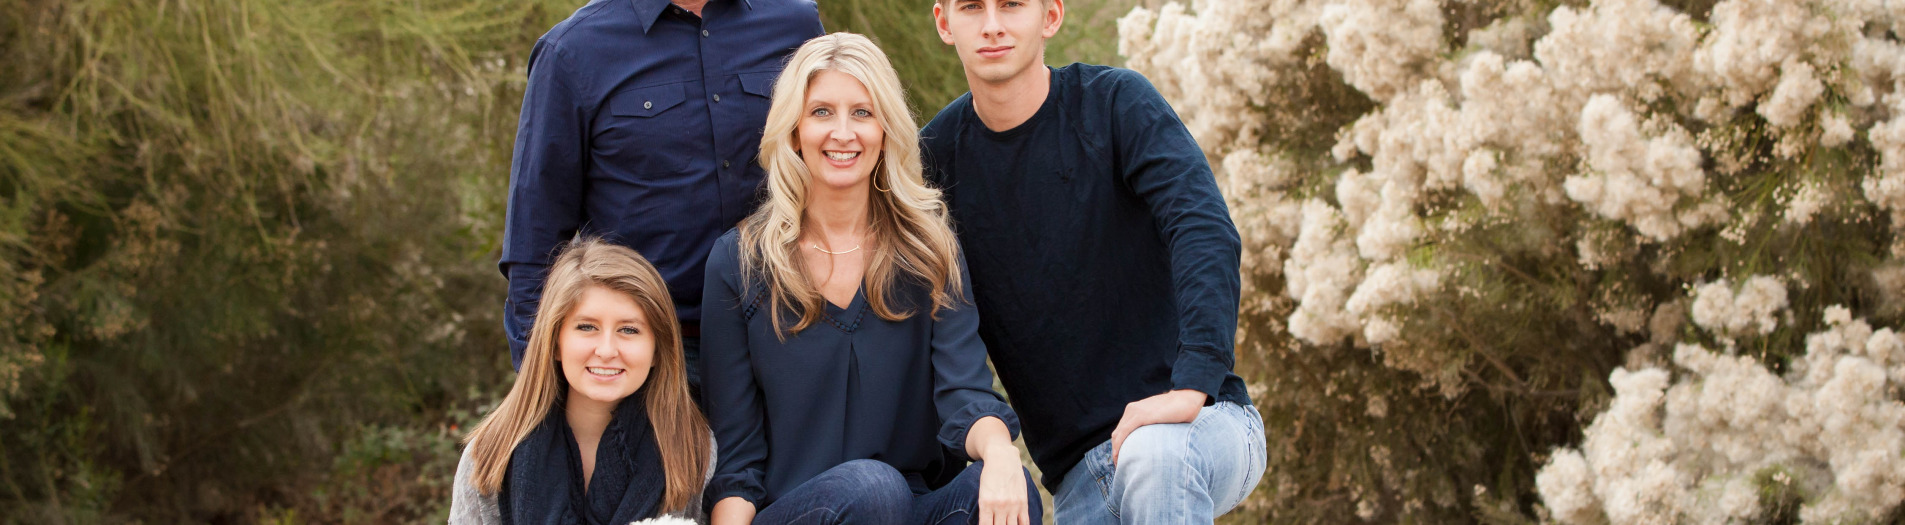 Tatum Ranch Family Photos | The Kilroy Fankhanel Family